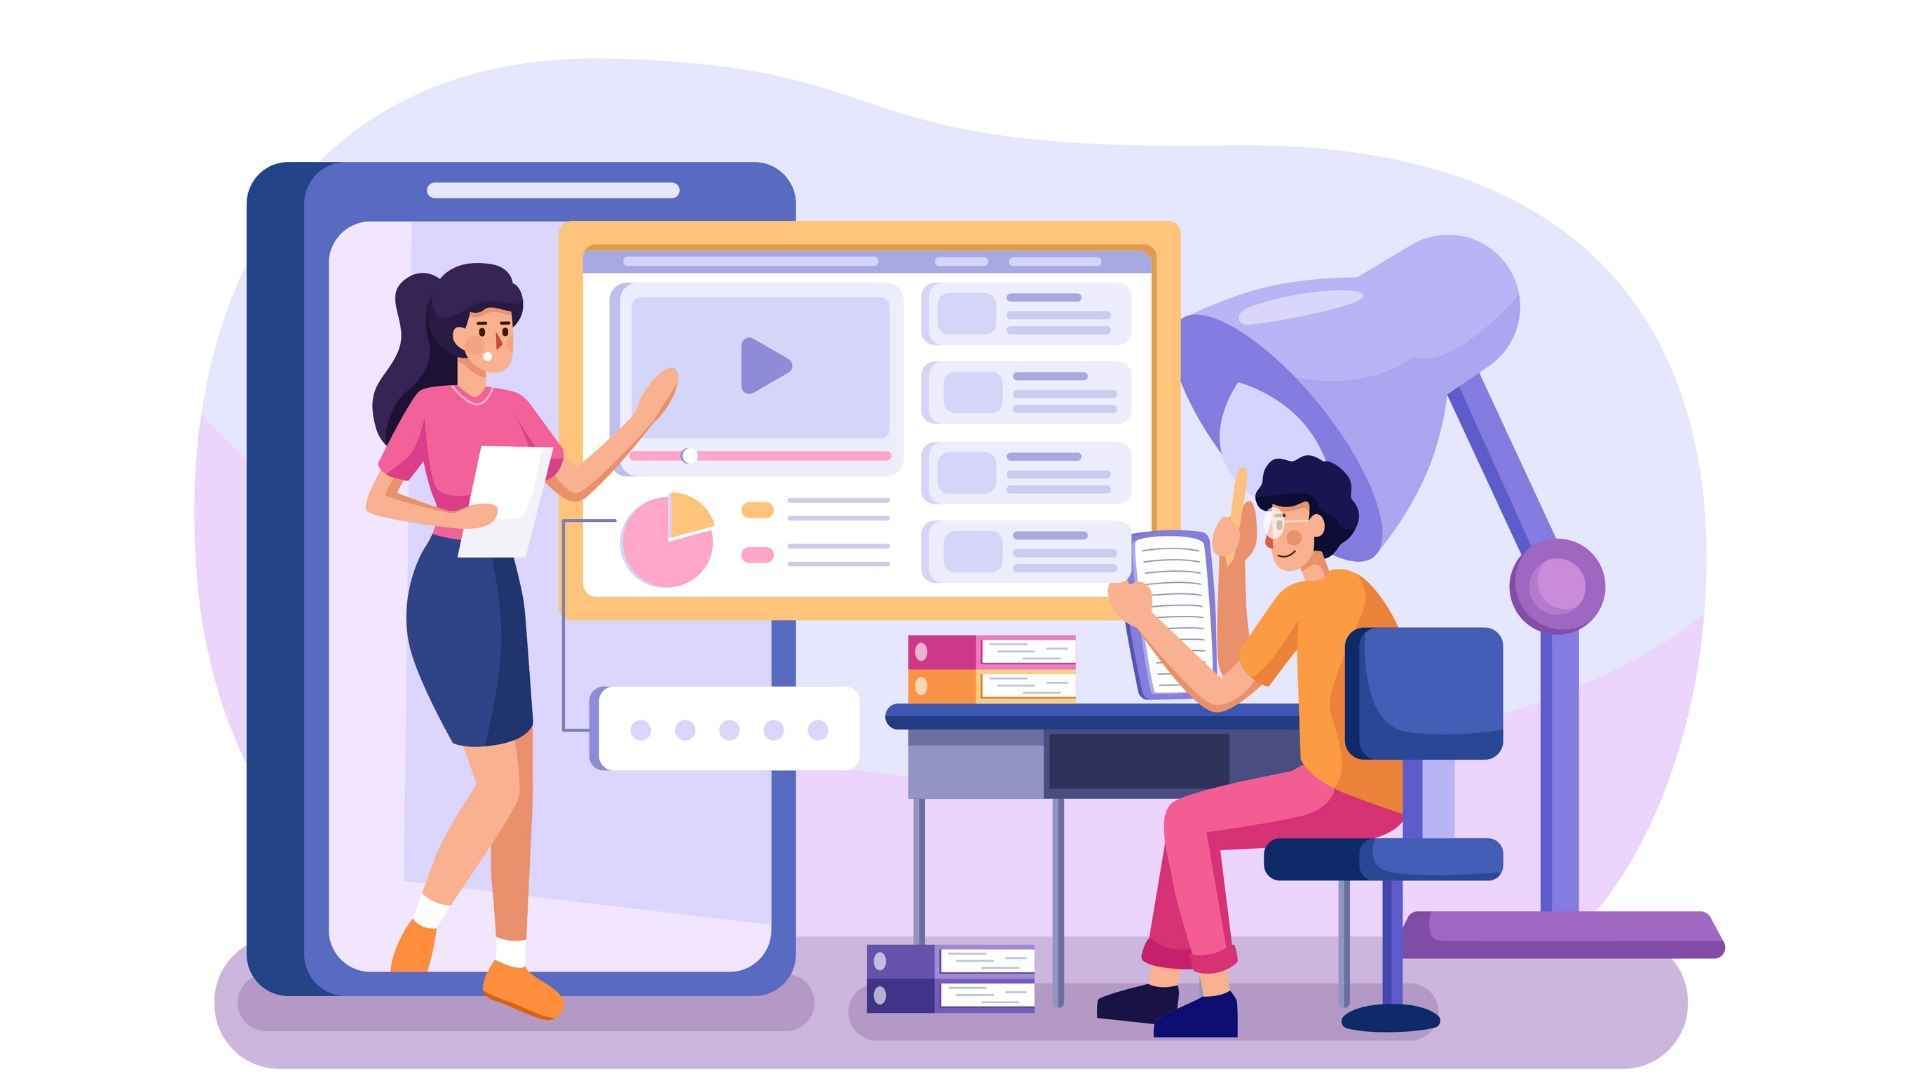 The process of learning from animated videos